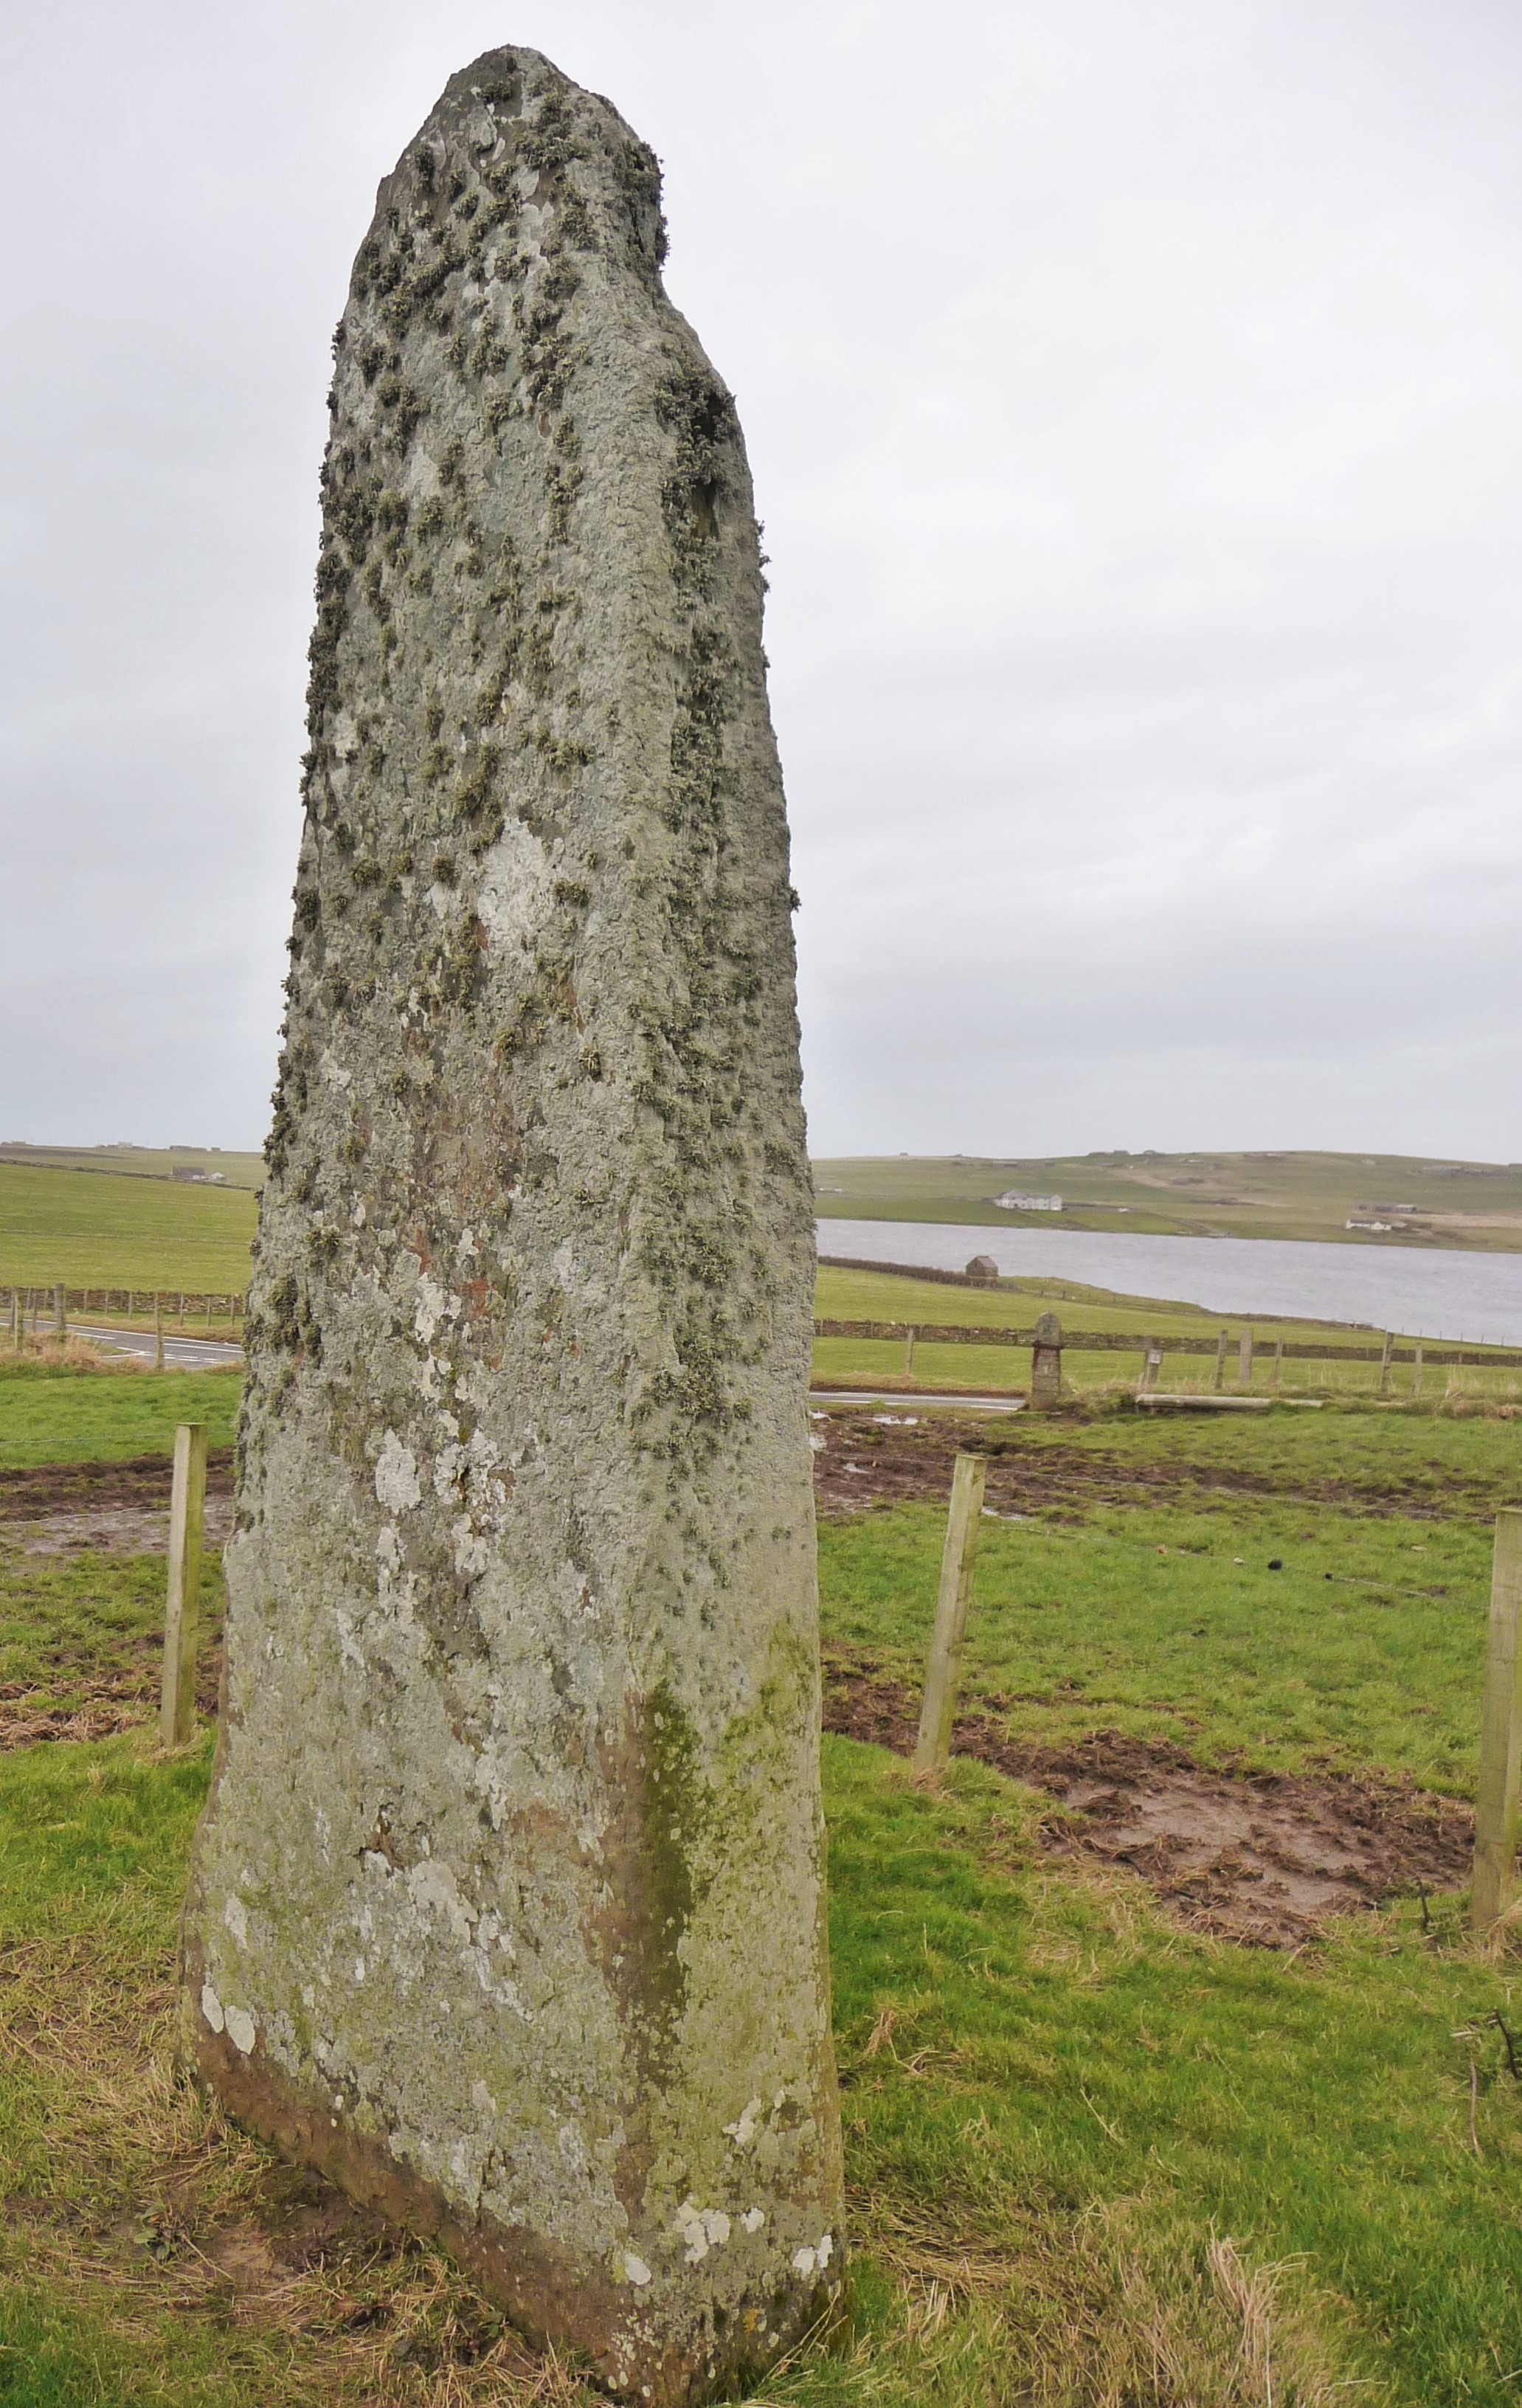 Stone of Quoyboon, Orkney Islands, Scotland - Orkneyology.com